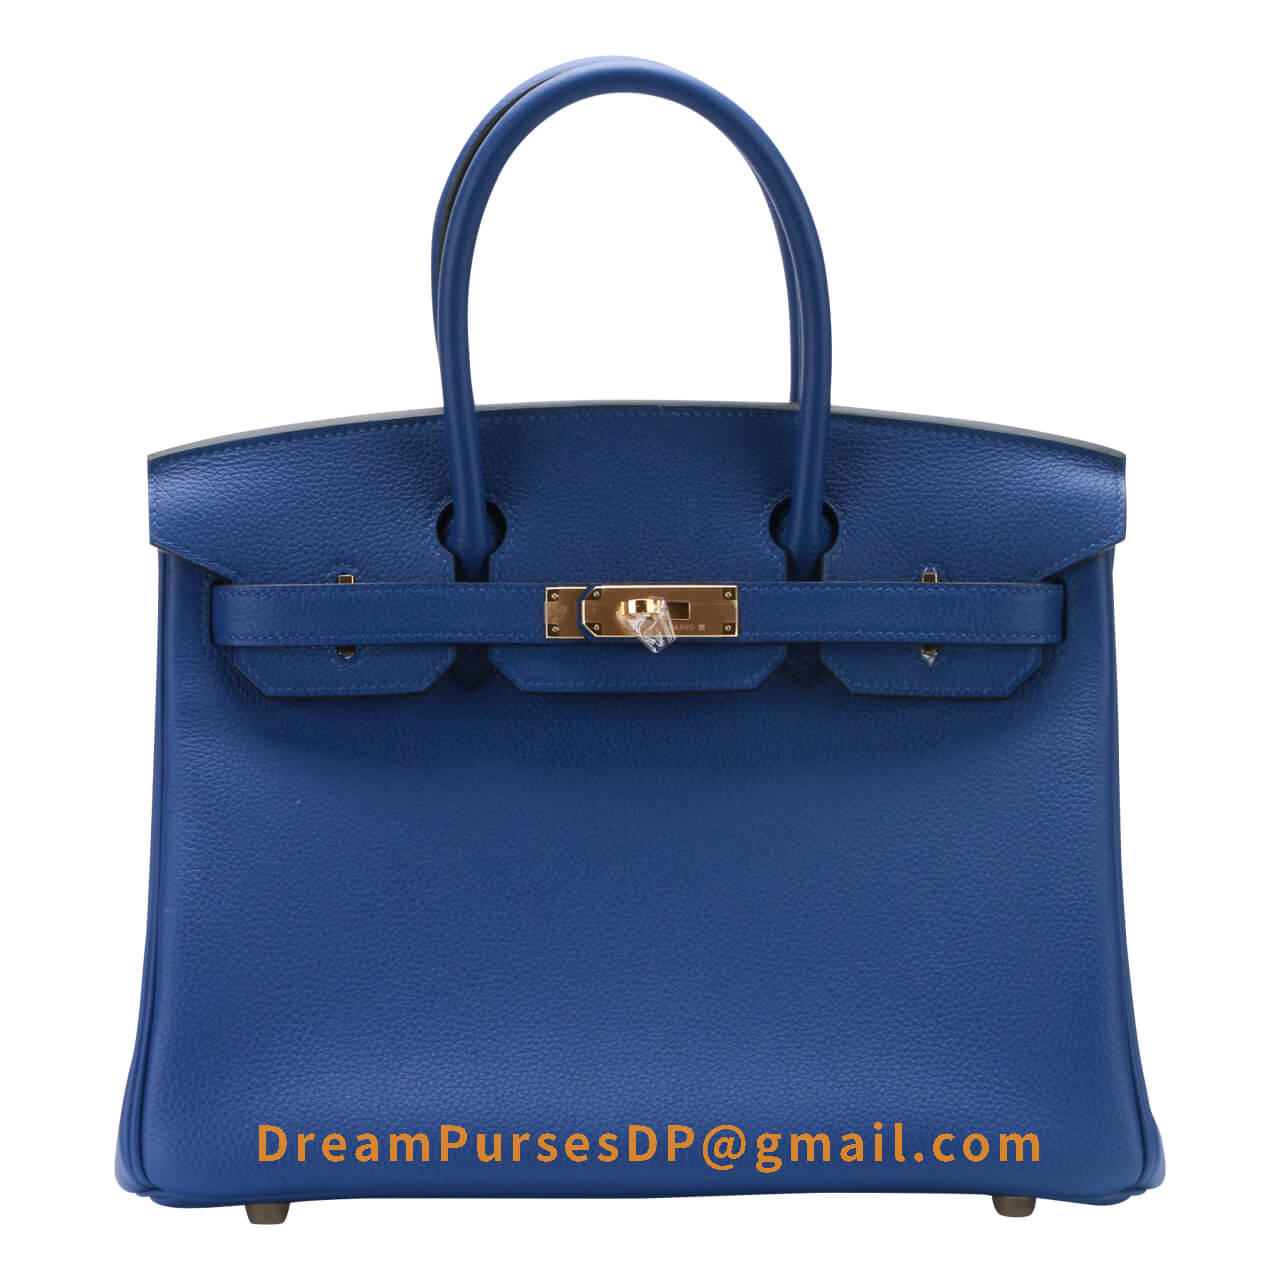 Hermes Birkin 30 Bag 7t Blue Electric Togo Calfskin GHW